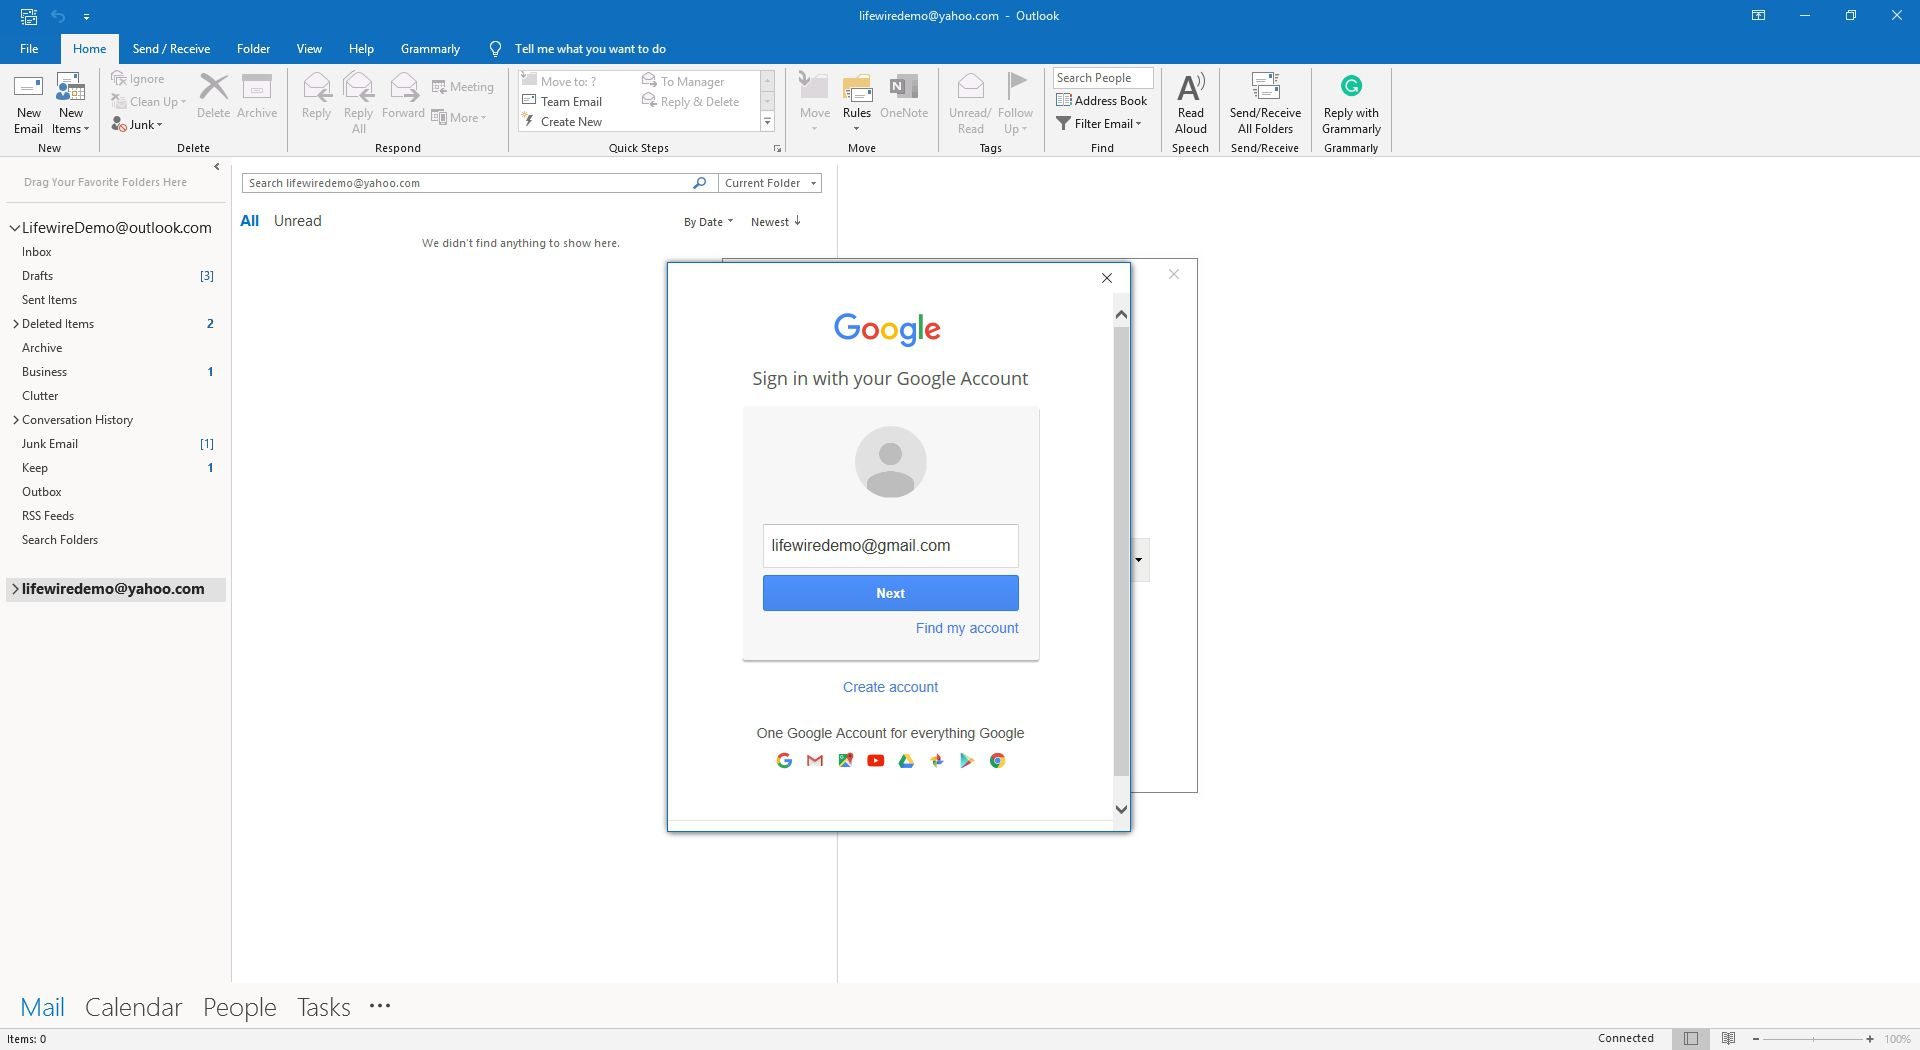 Logging into Gmail to enable access.